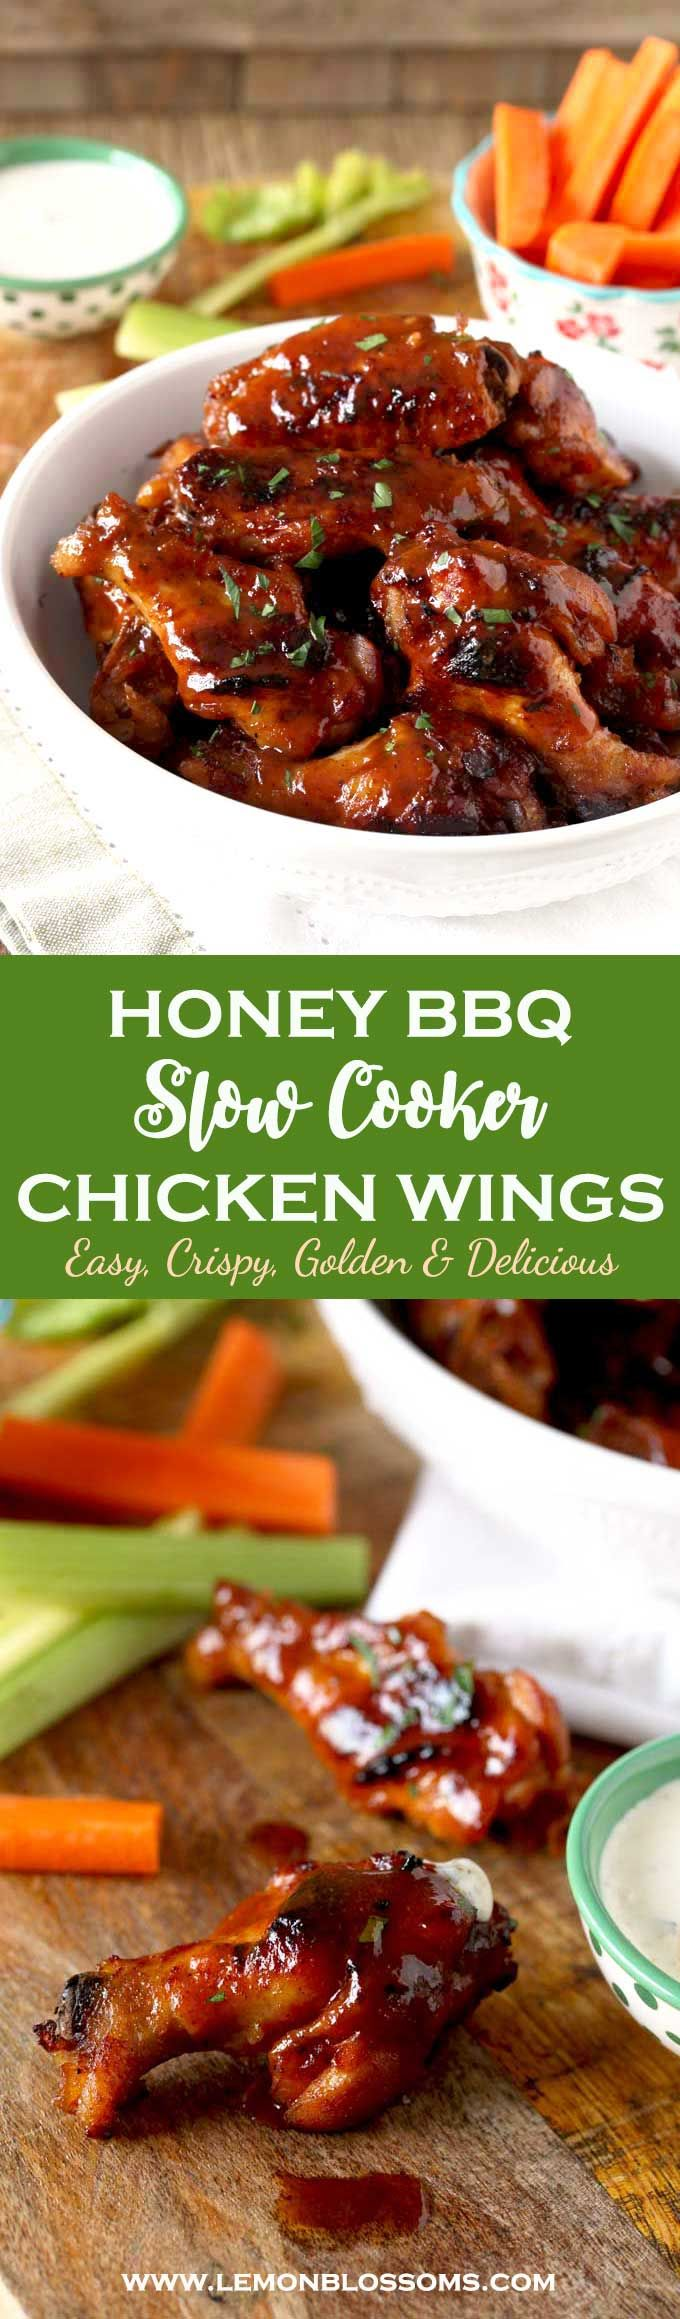 These Slow Cooker Chicken Wings are cooked in a tasty Honey BBQ sauce until fall off the bone tender. Quickly broiled until golden then served smothered in more sauce! This easy appetizer will be the hit at your next party or game night! #appetizer #gamenight #chickenwings #crockpot #slowcooker via @lmnblossoms